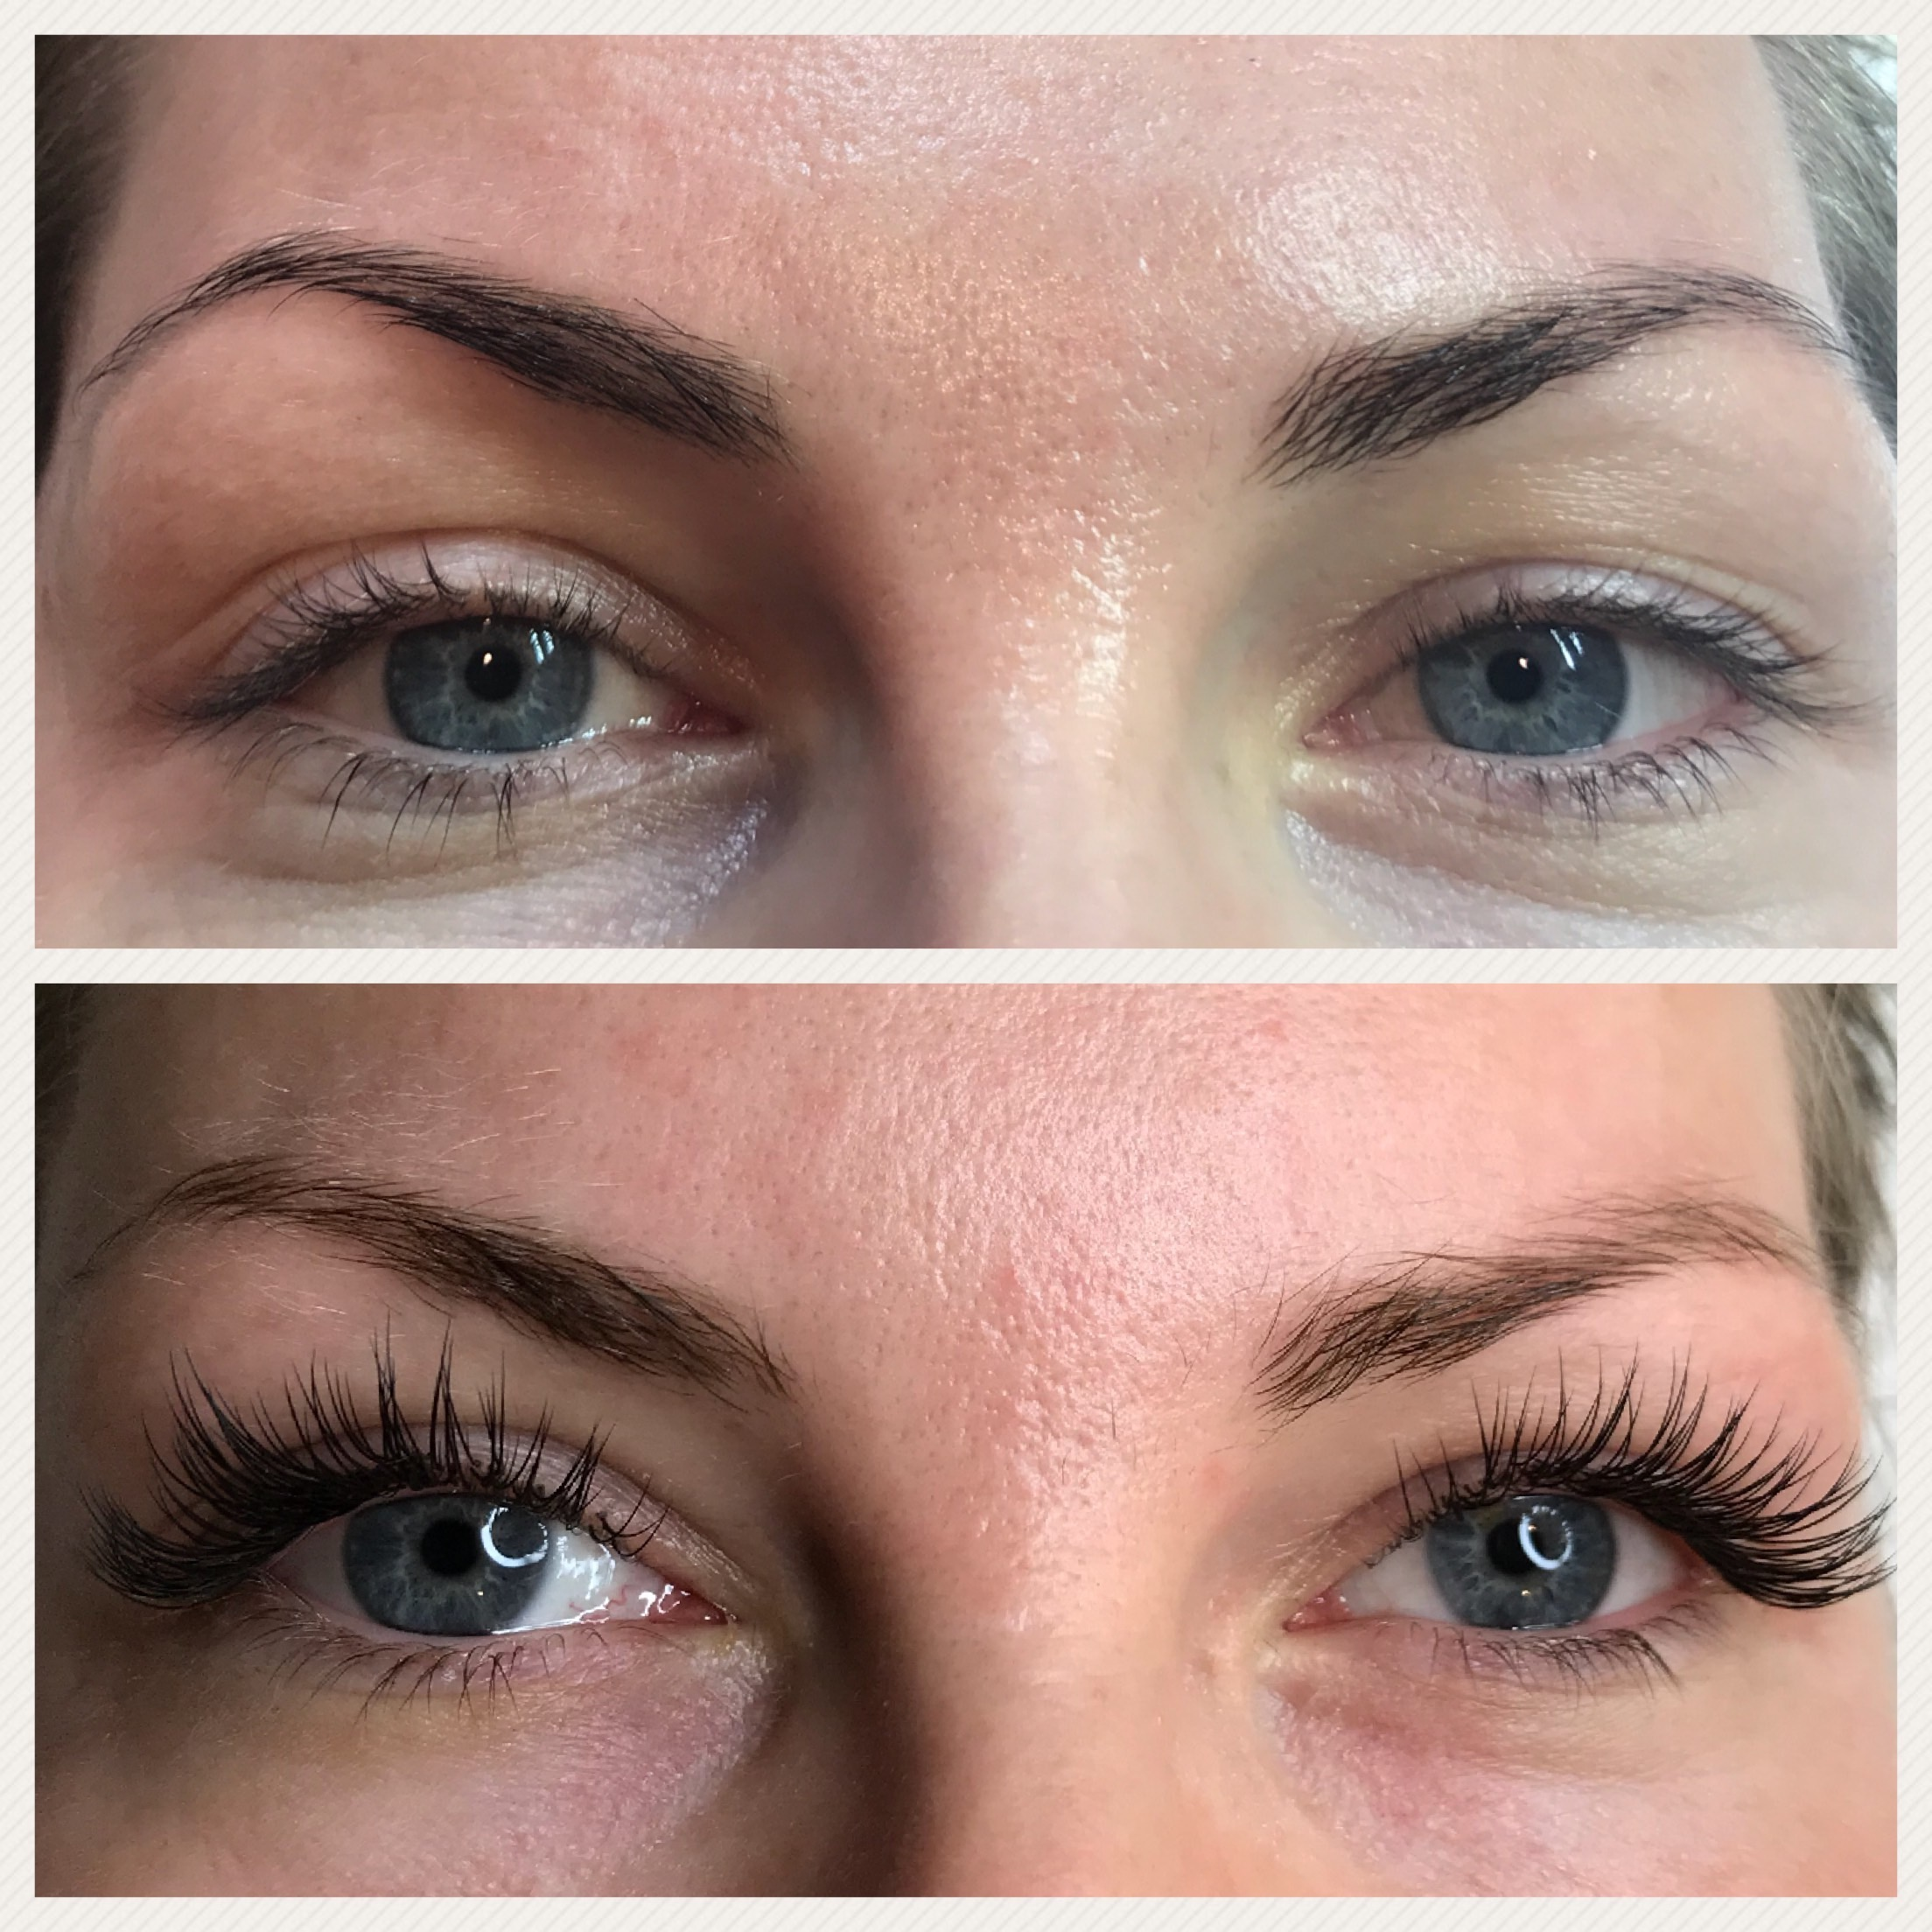 dfccfcce3b4 Eyelash extensions are used to enhance the length, curl and fullness of natural  lashes. High-quality synthetic lashes are individually applied to natural  ...